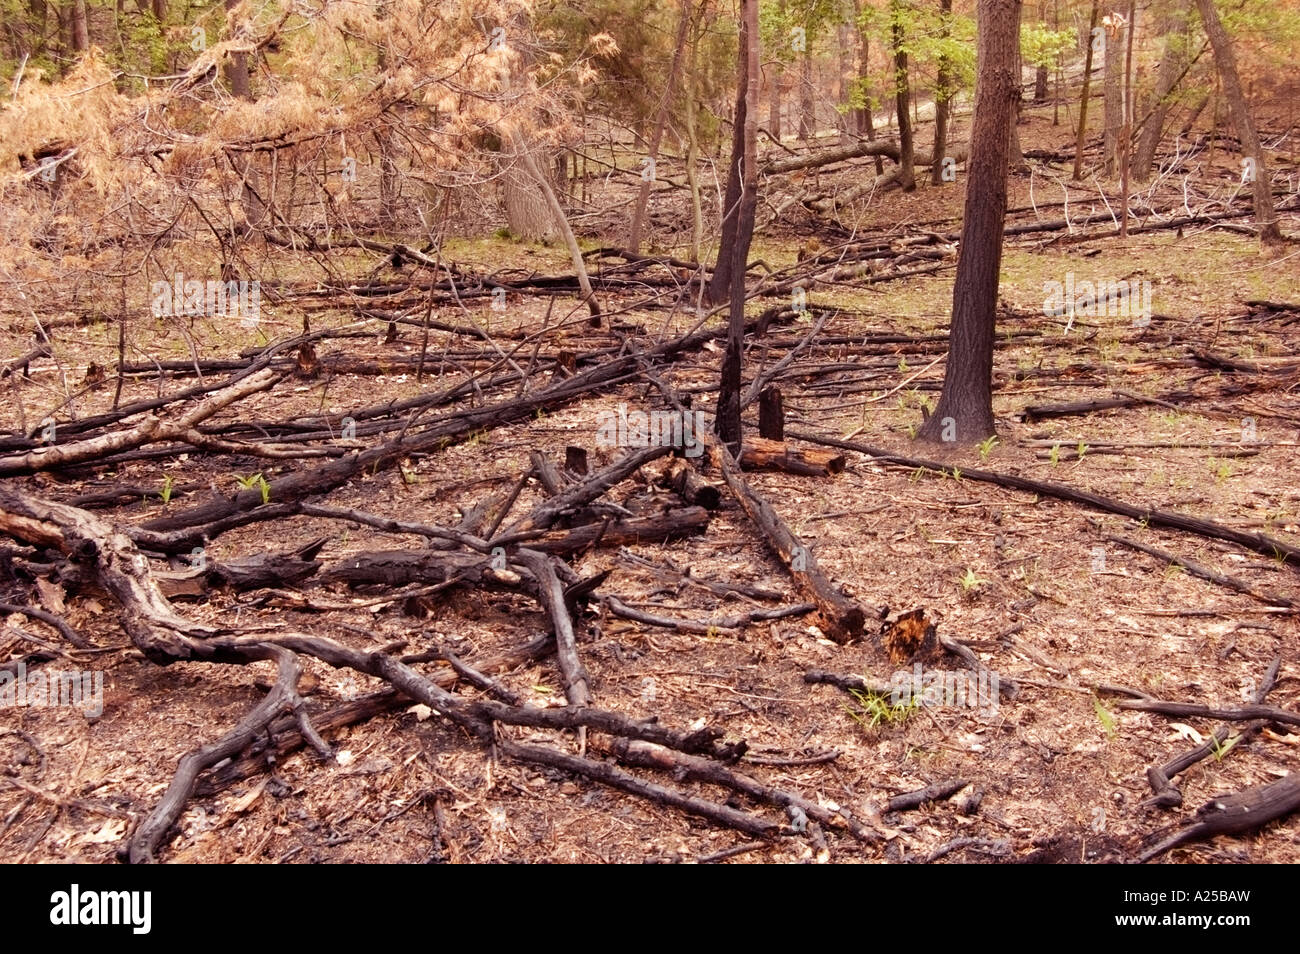 save forest stock photos save forest stock images alamy